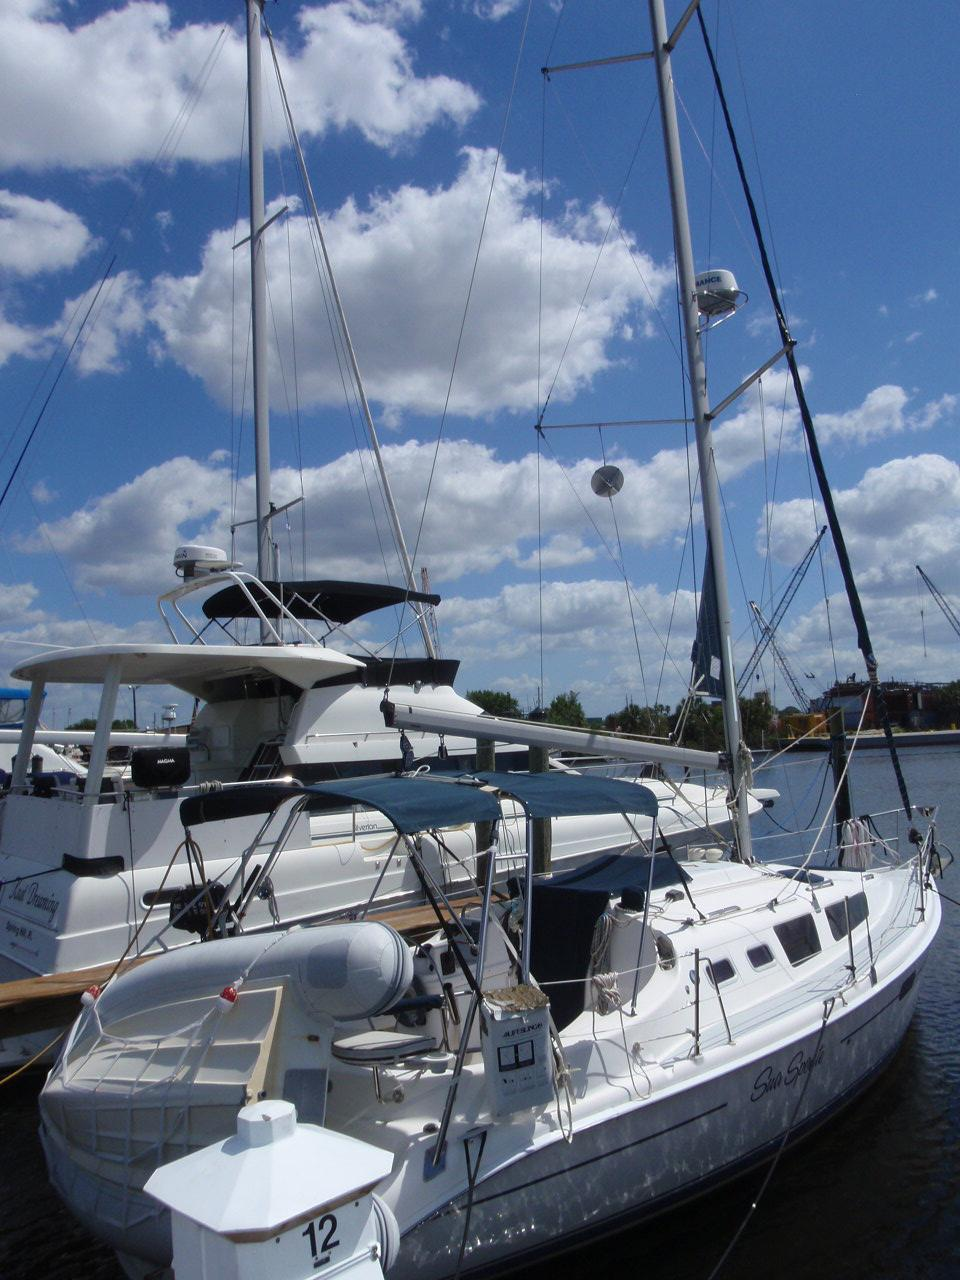 tarpon springs single personals Find boats for sale in tampa on oodle classifieds join millions of people using oodle to find unique used boats for sale, fishing boat listings, jetski classifieds, motor boats, power boats, and sailboats don't miss what's happening in.